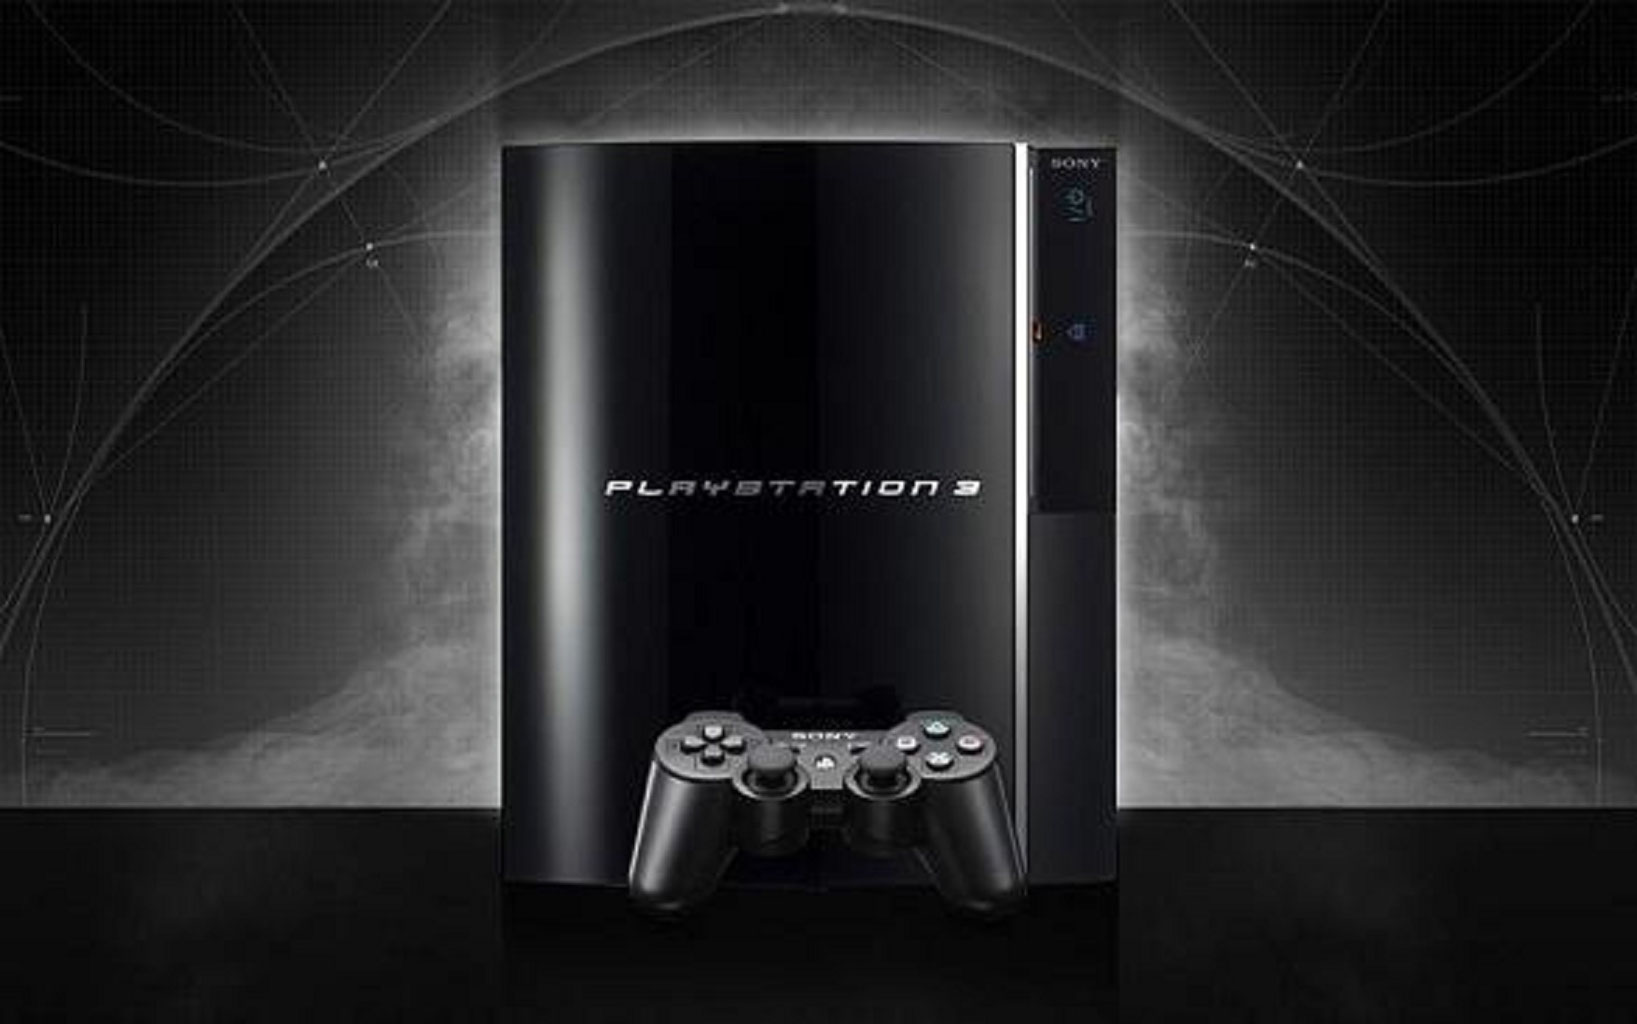 Playstation 3 Console Variations The Database For All Sony Super Slim 320 Gb Colors And